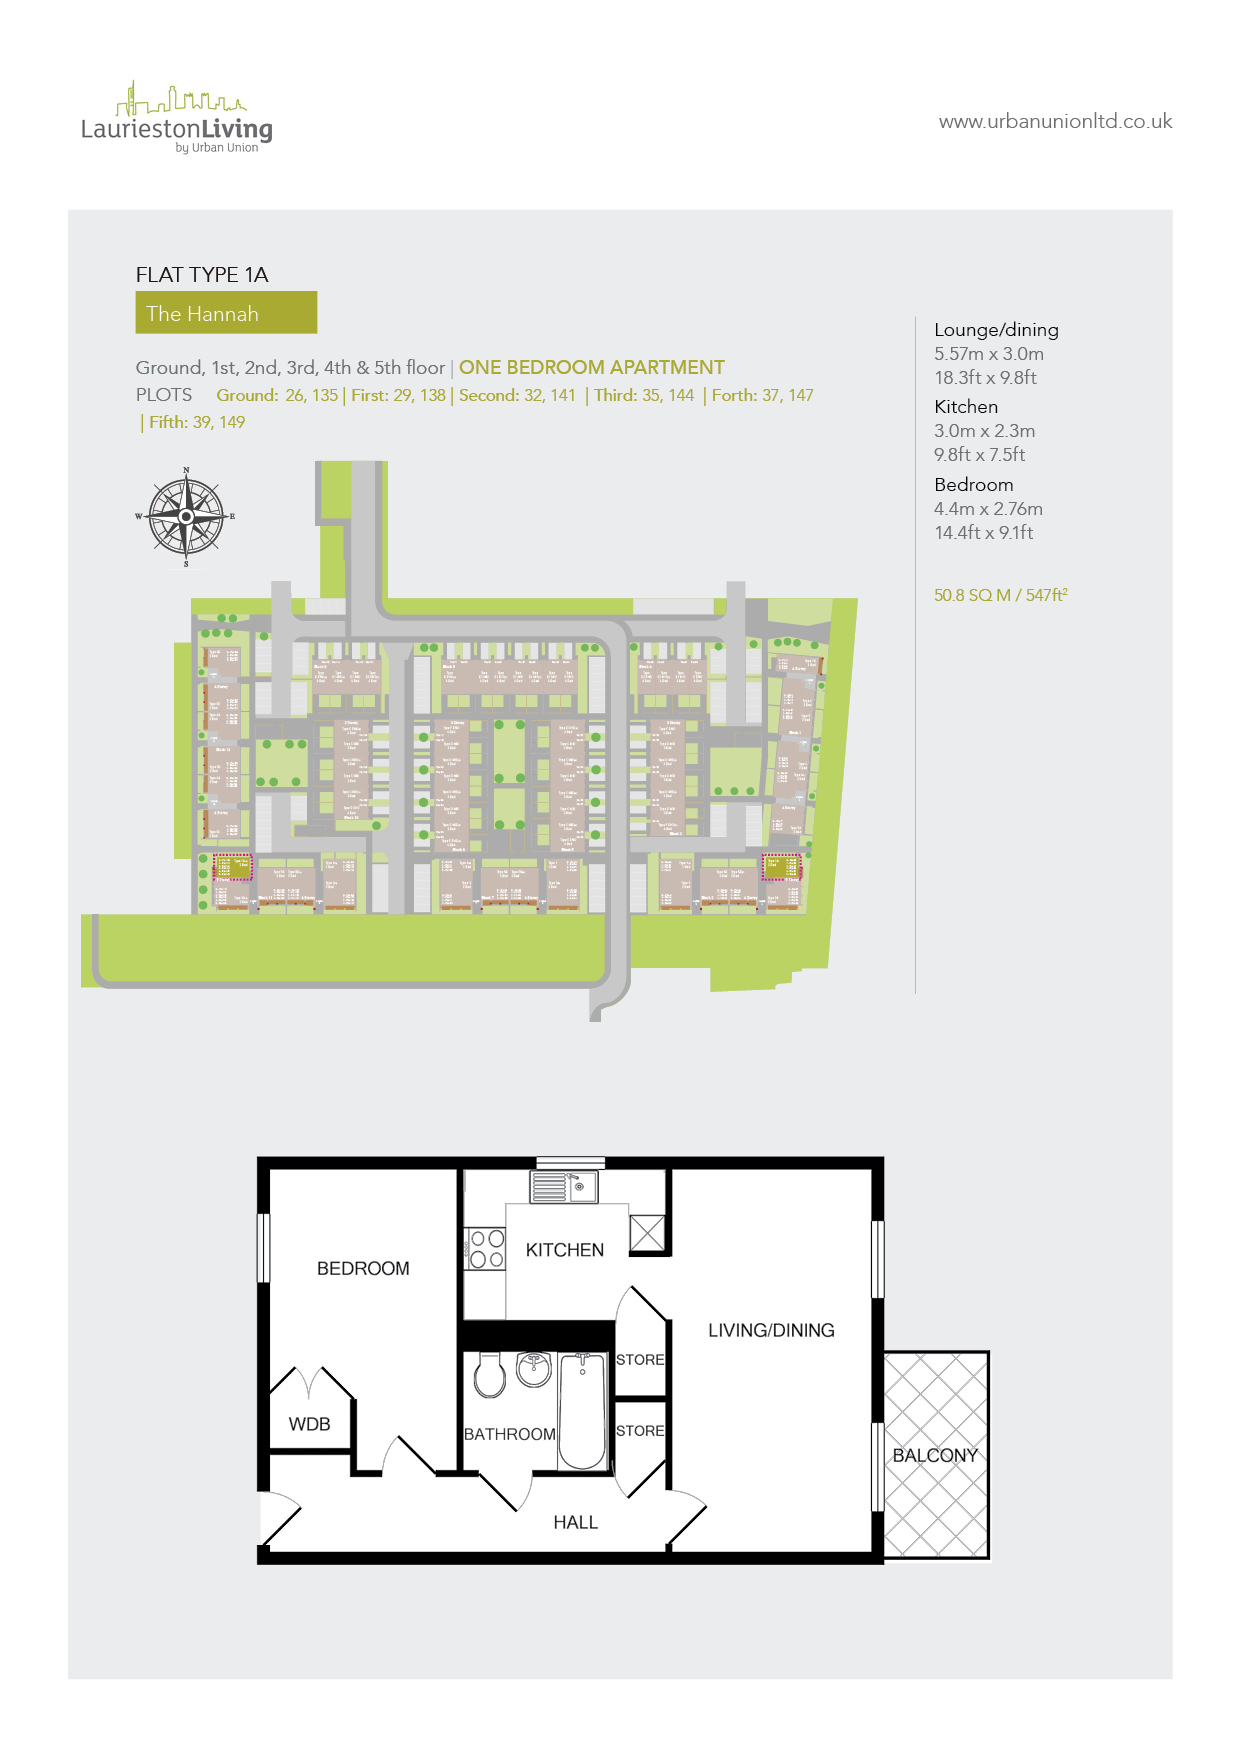 1 Bed Flat Glasgow Laurieston Living Urban Union Developments